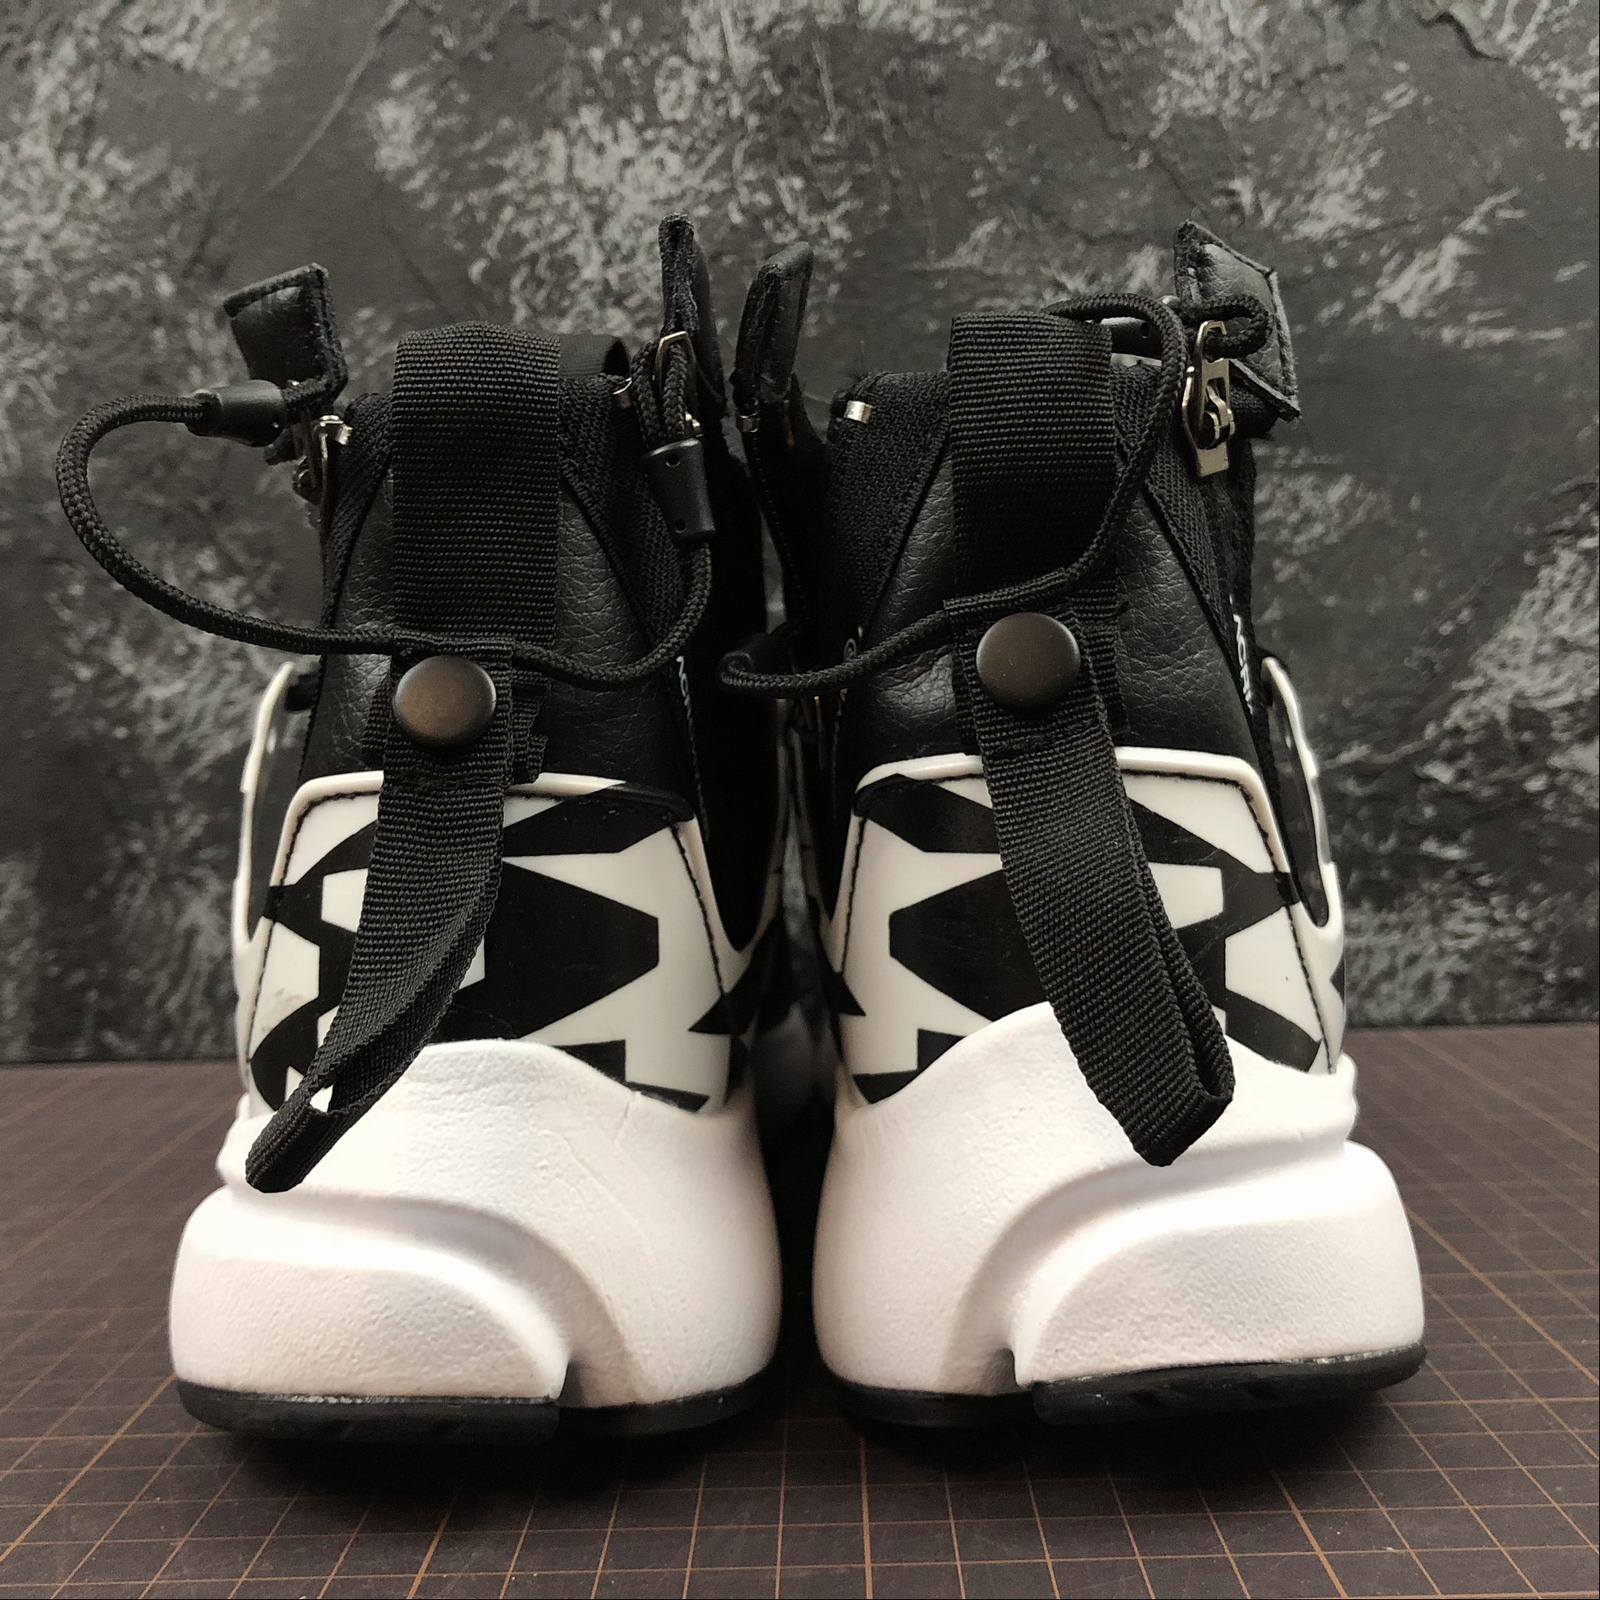 Мужские кроссовки Nike Air Presto Mid Acronym Men Black,White,Black - фото №4